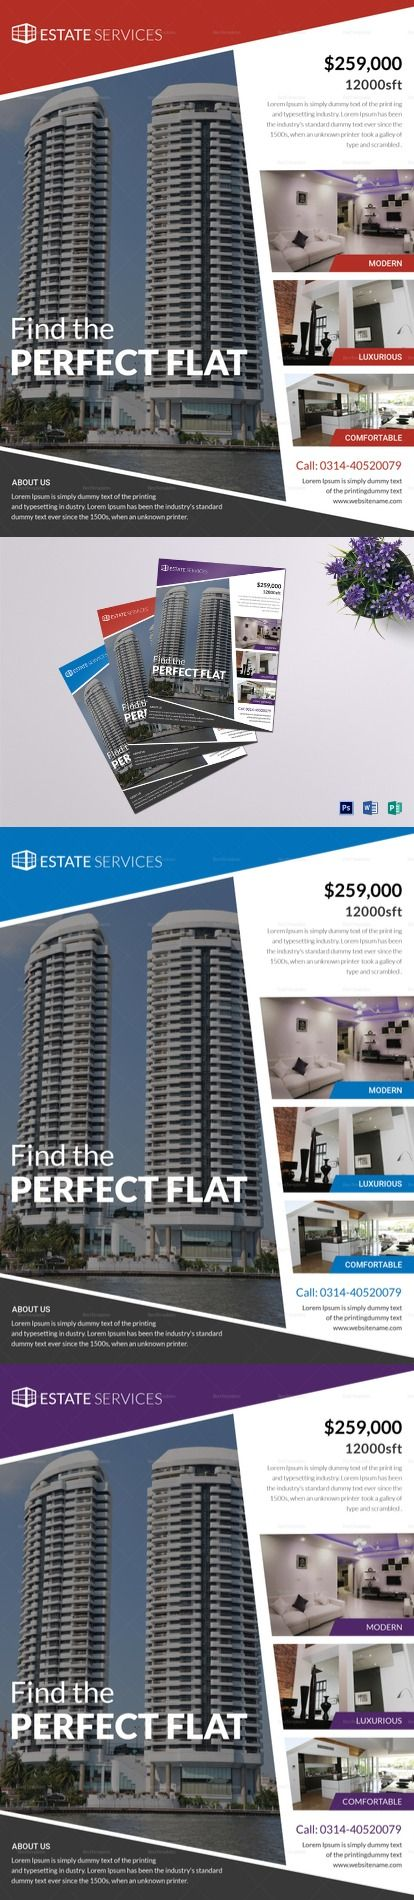 Real Estate Flyer Template - Formats Included : MS Word, Photoshop, Publisher  - File Size : 8.5x11 Inchs